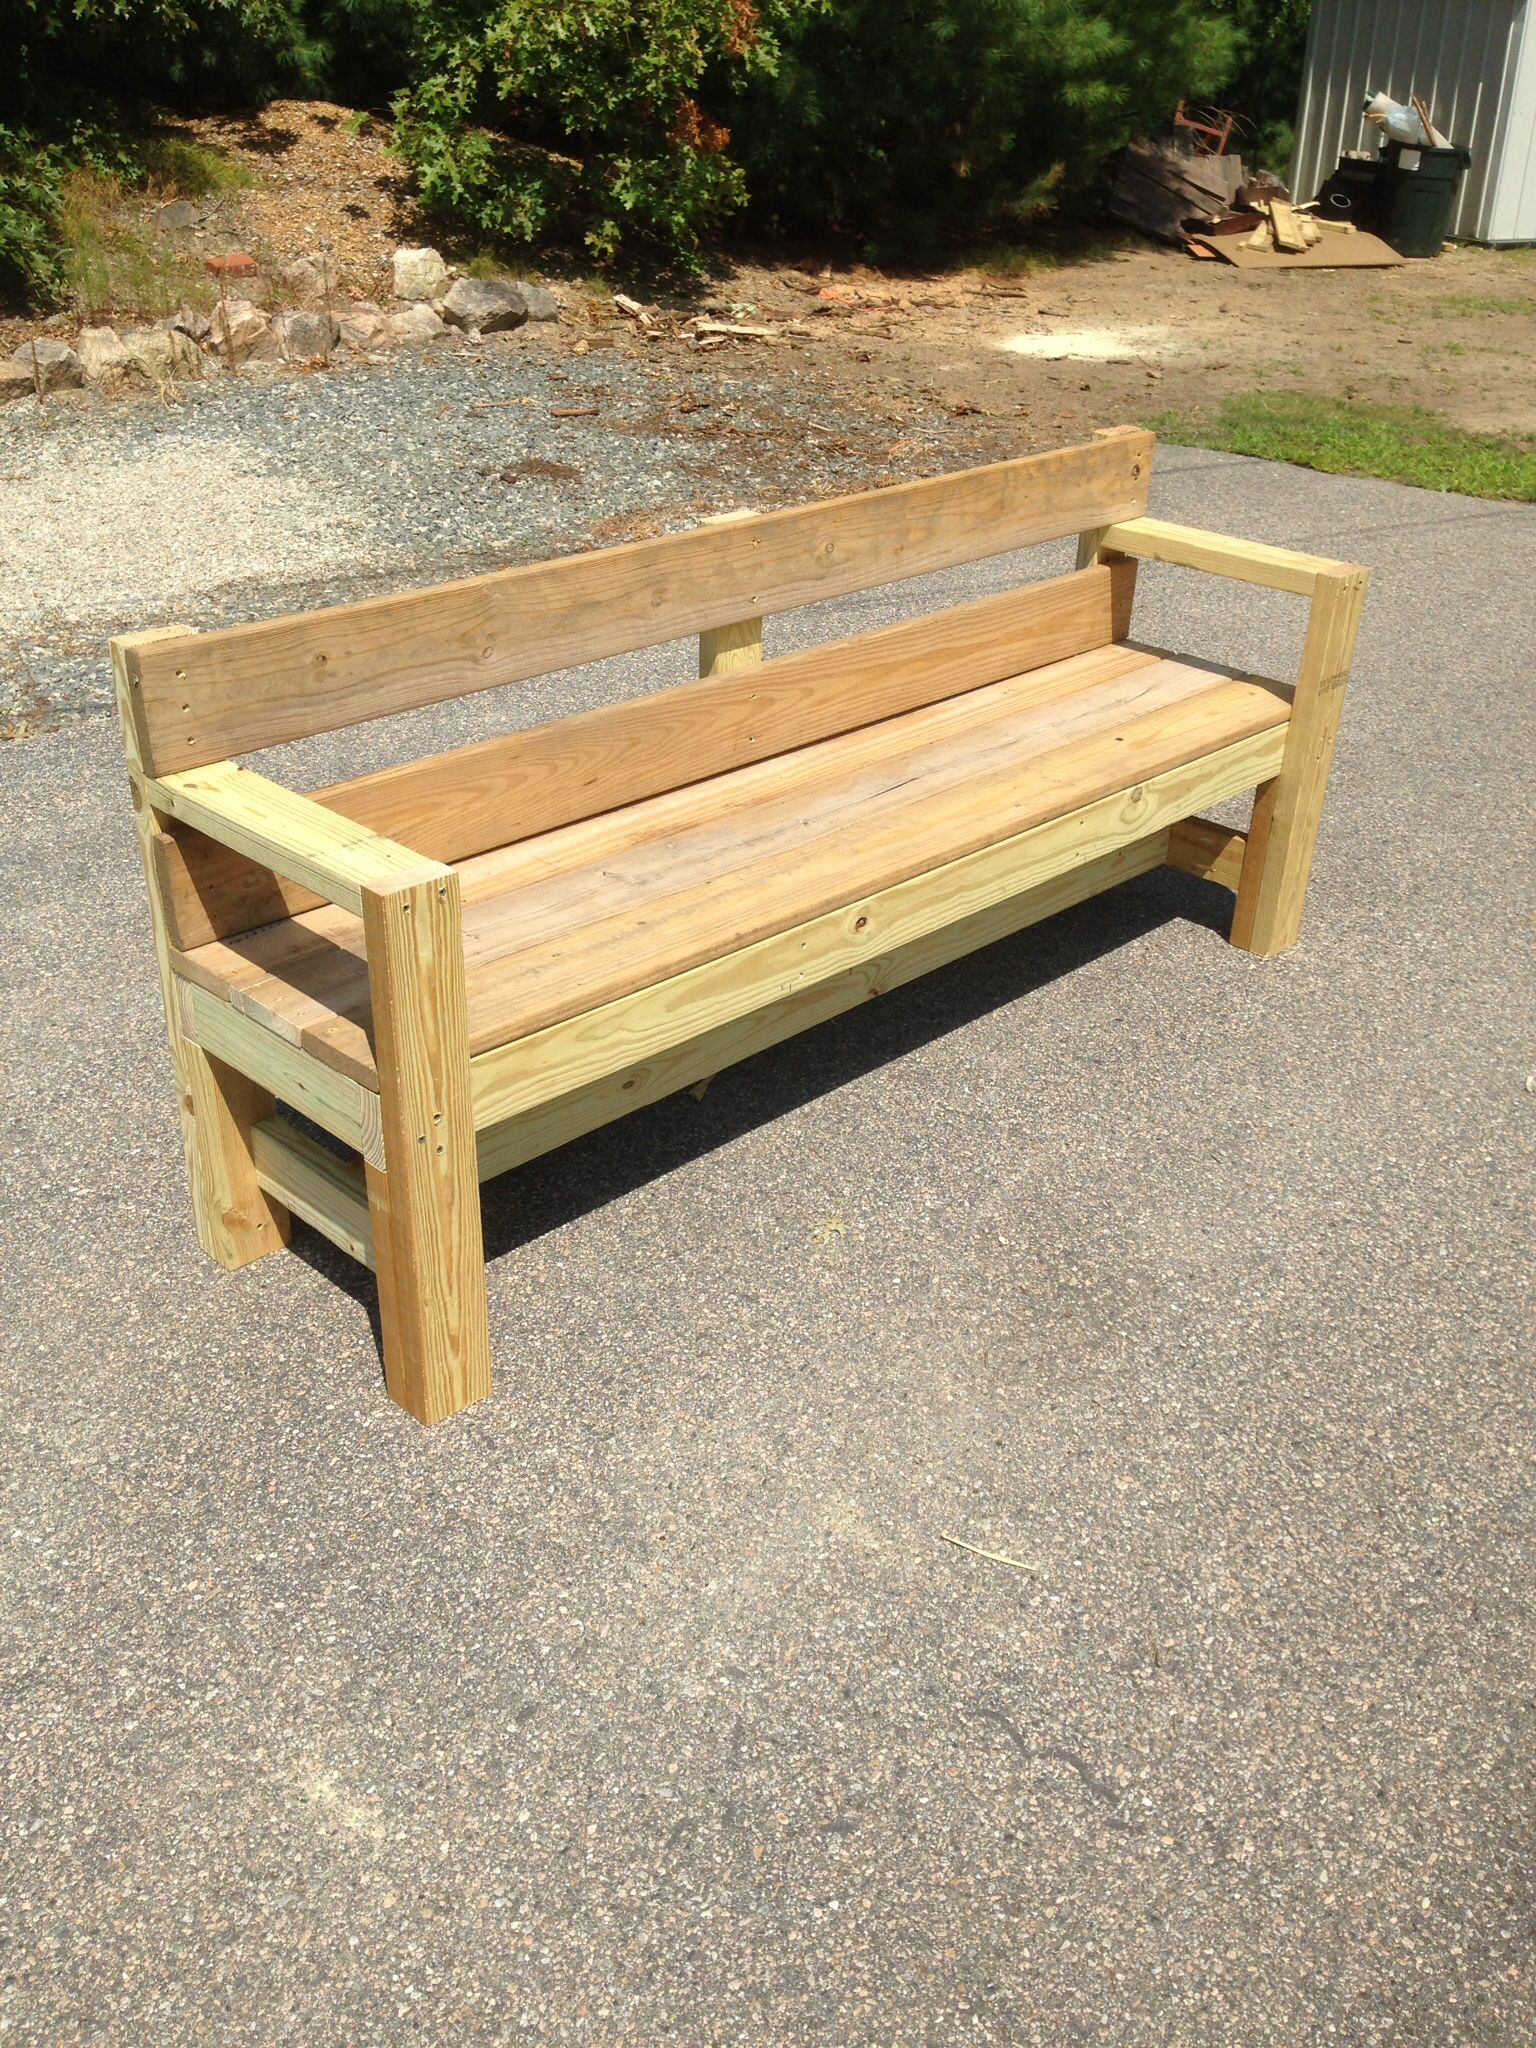 Outdoor Bench Built With Pt 2x4 S And 1x6 S 3 And 2 Decking Screws With A Few Pocket Hole Diy Outdoor Seating Outdoor Garden Furniture Diy Outdoor Furniture